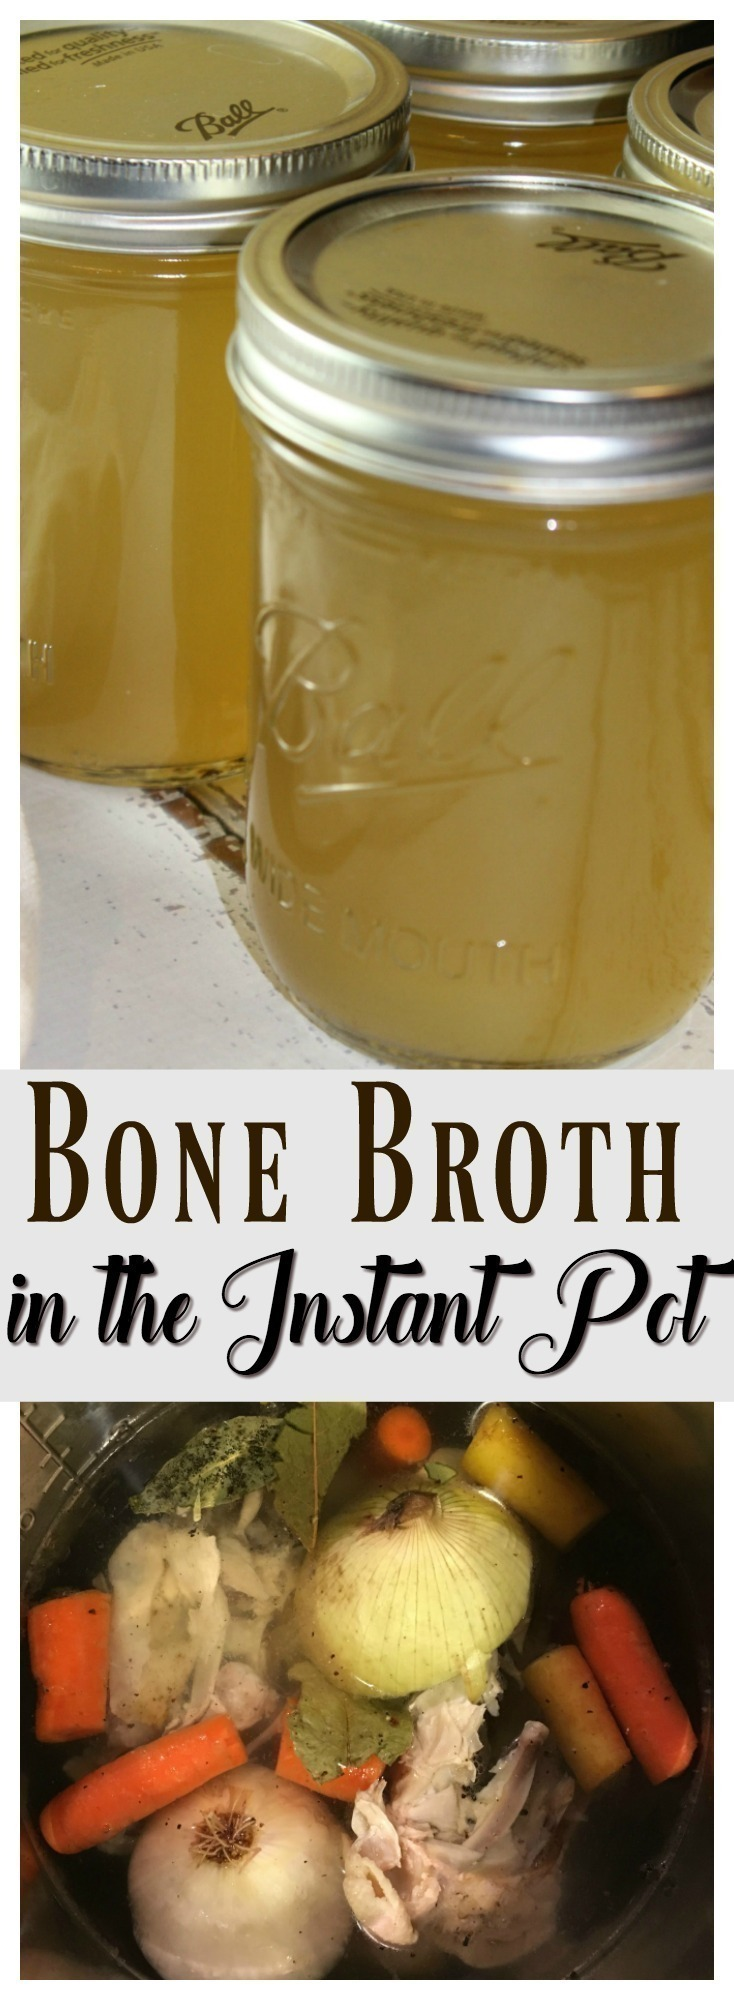 How to Make Bone Broth in the Instant Pot